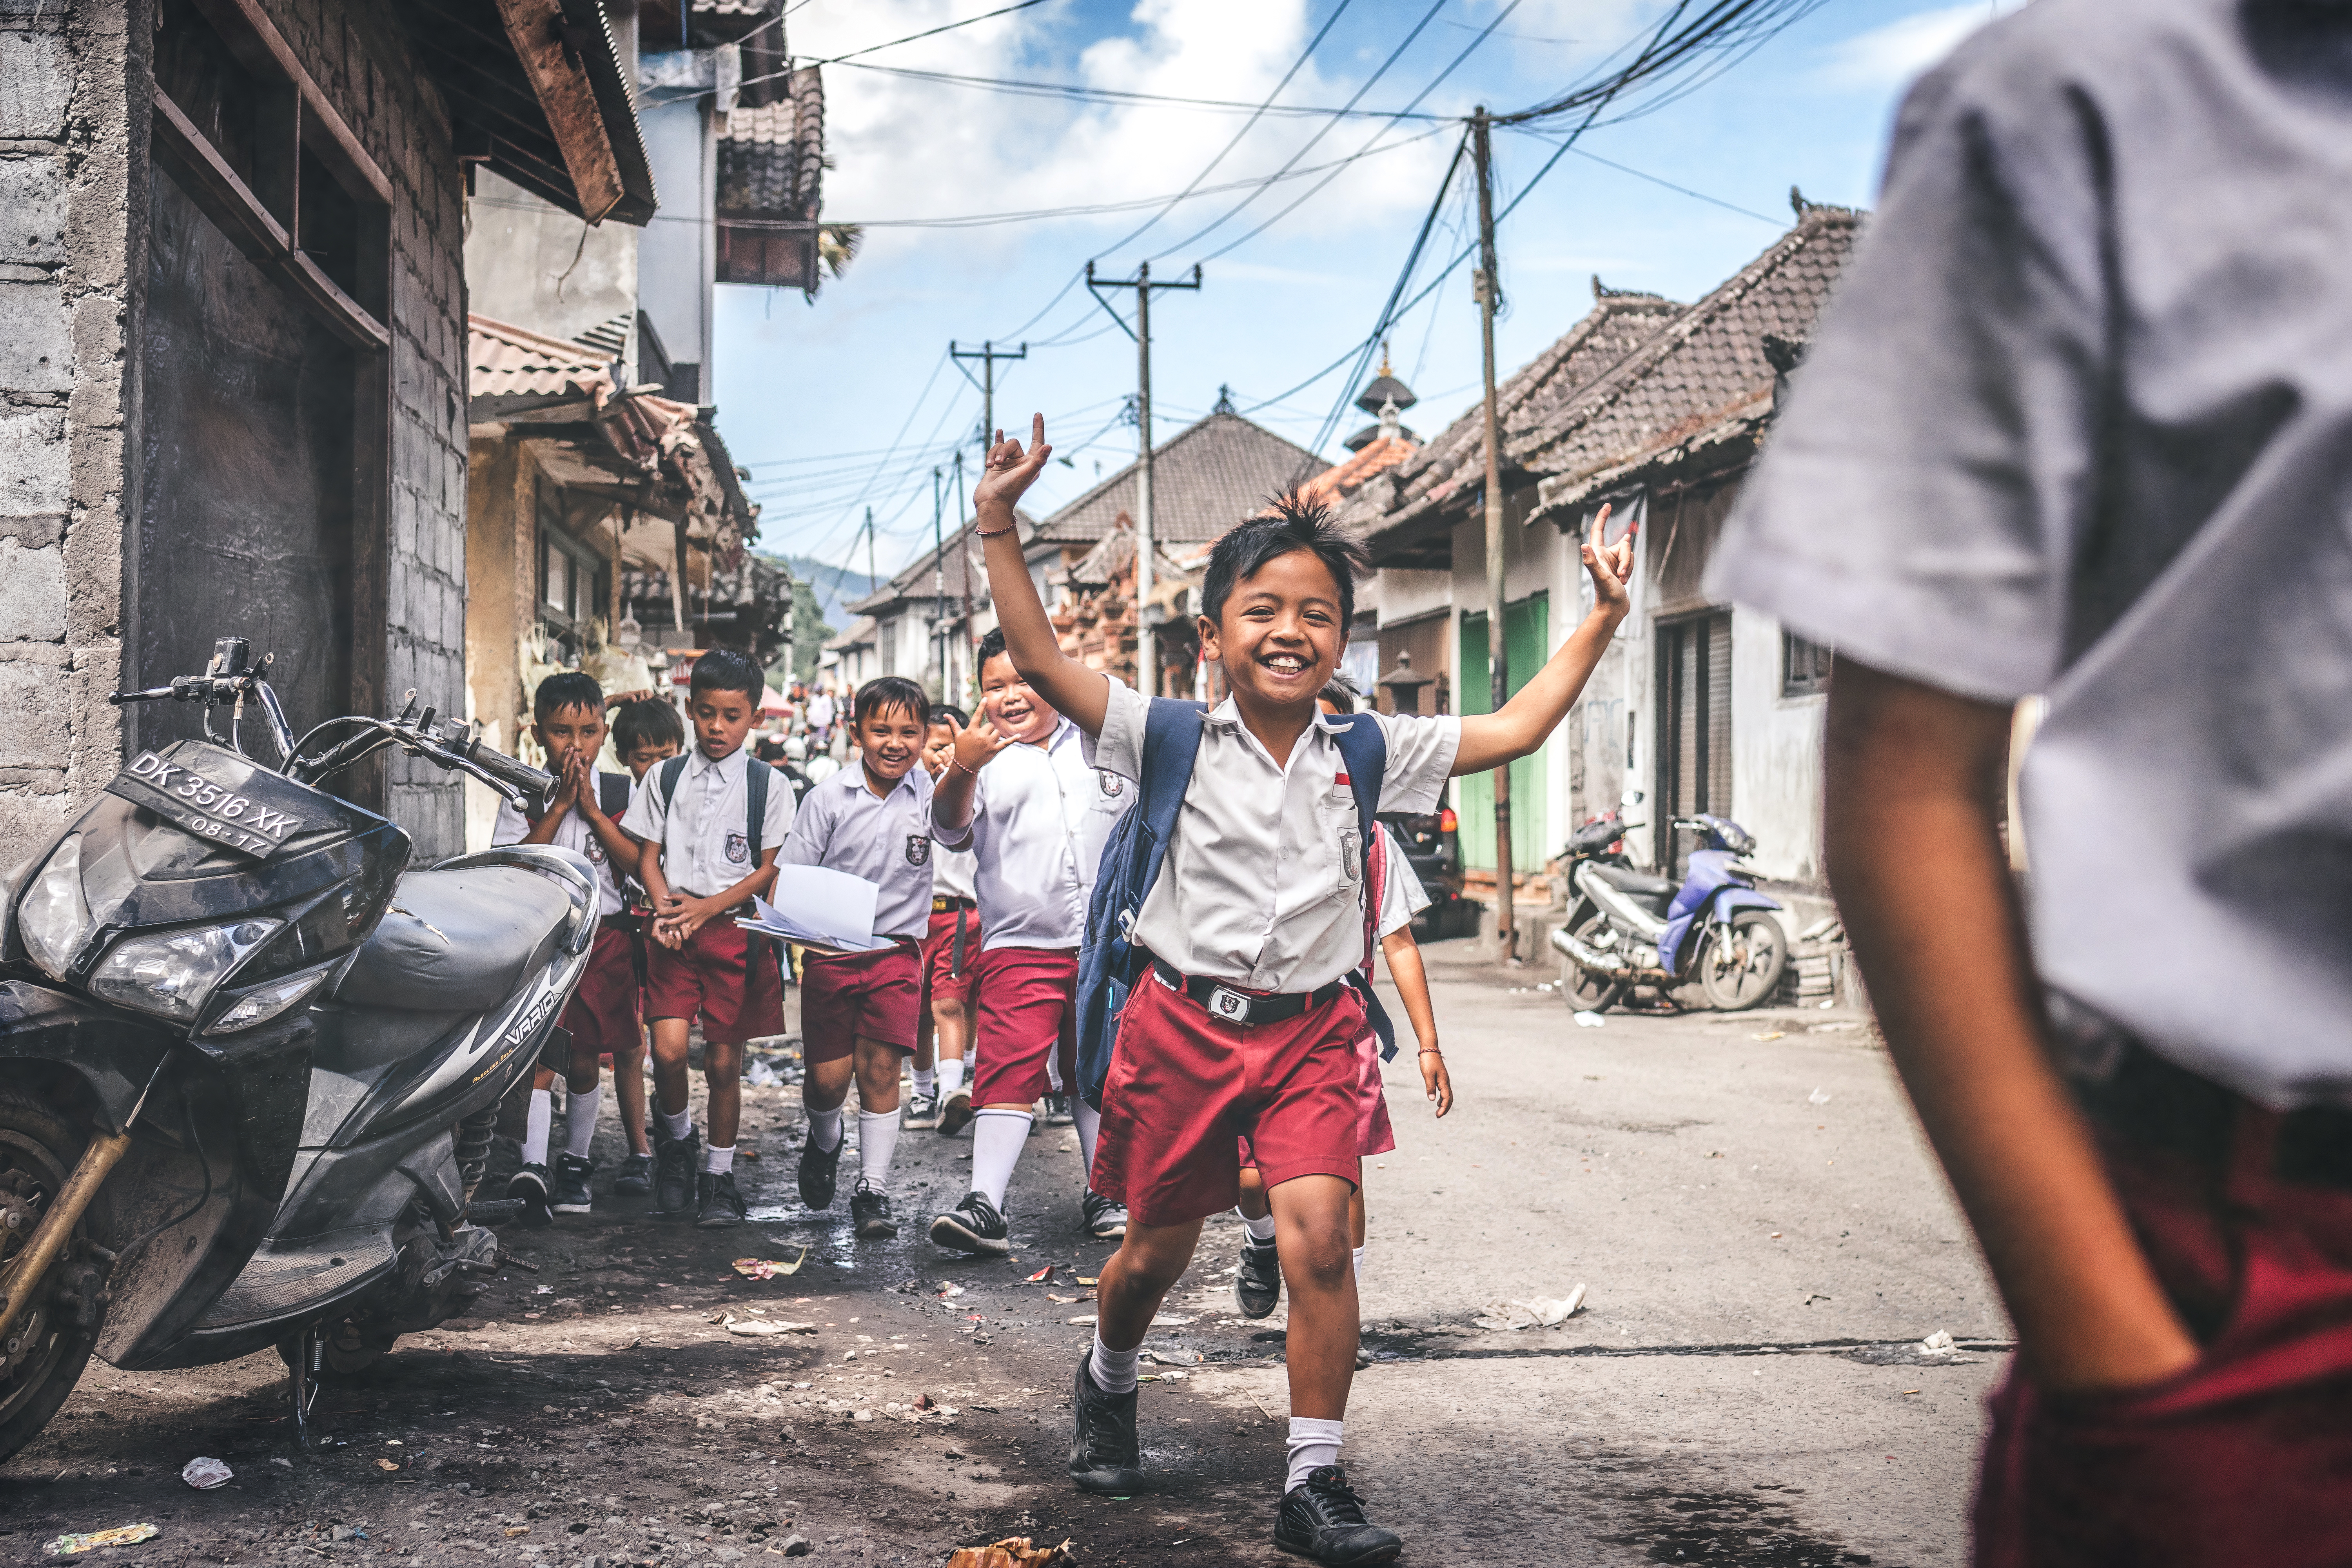 Boy in White and Red School Uniform Raising Hands Outdoors